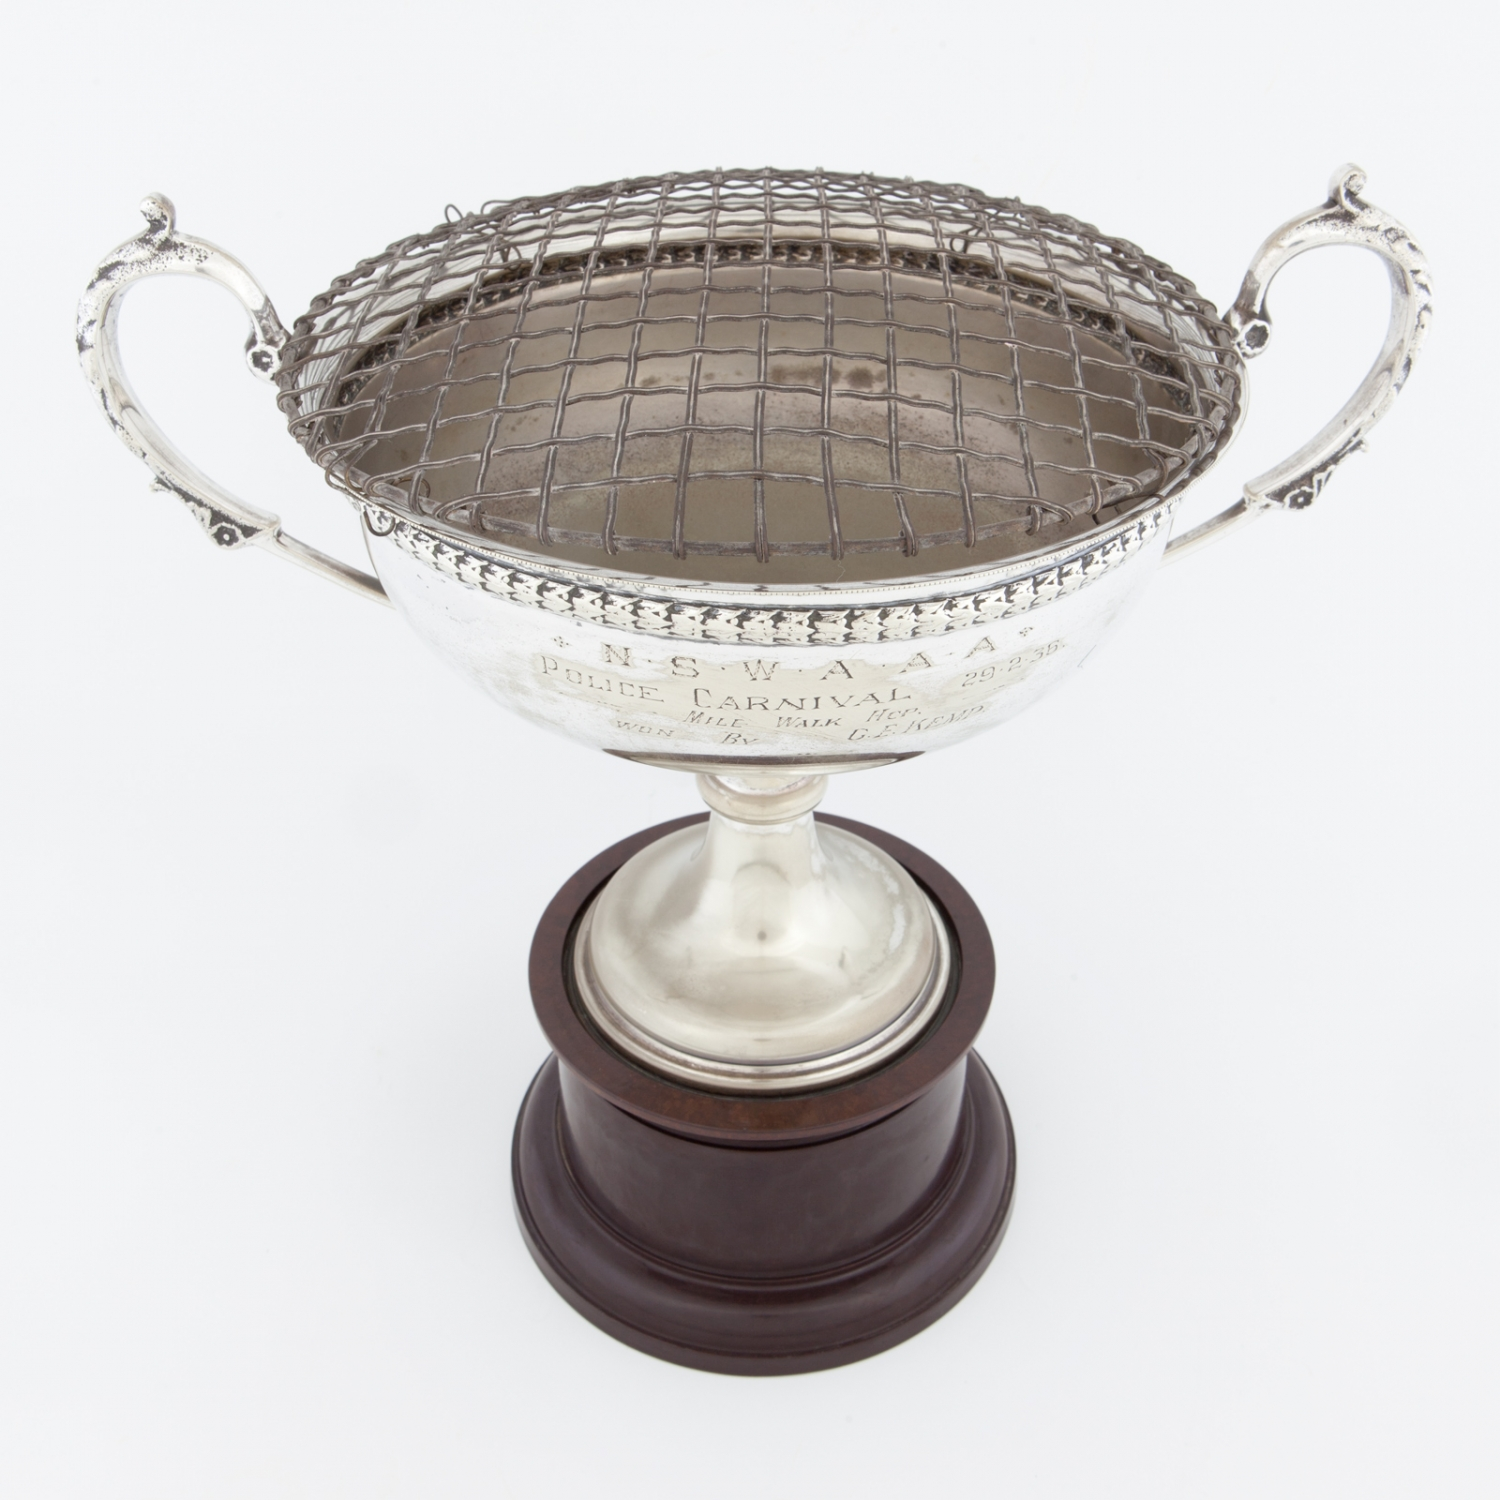 Trophy for the One Mile Walk, NSW A.A.A Police Carnival, won by Mr G E Kemp, 1936